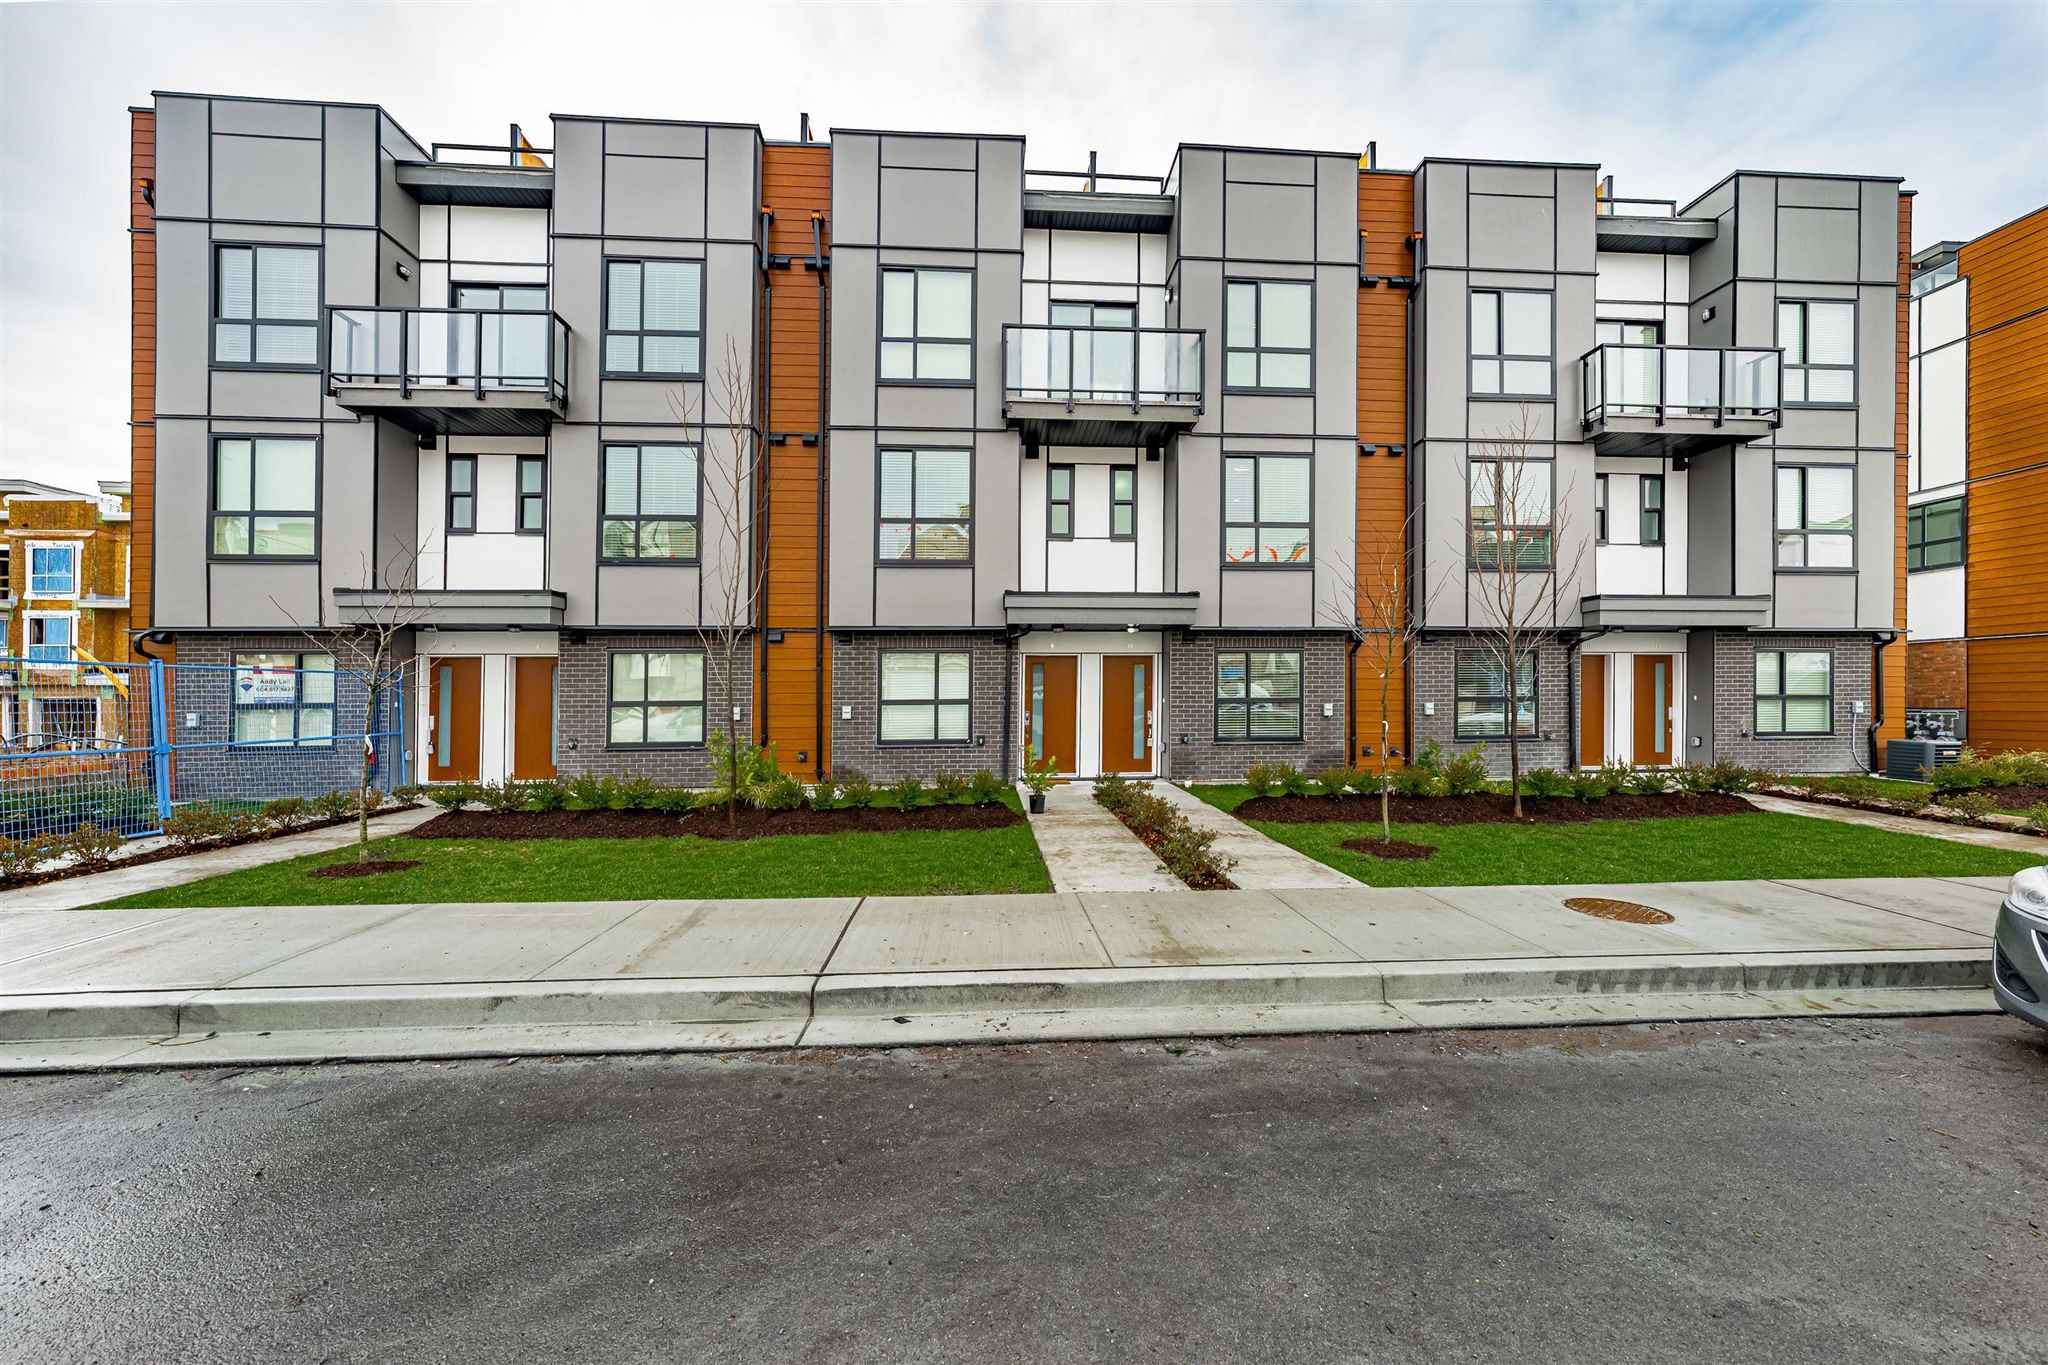 27 19760 55 AVENUE - Langley City Townhouse for sale, 3 Bedrooms (R2604577) - #1